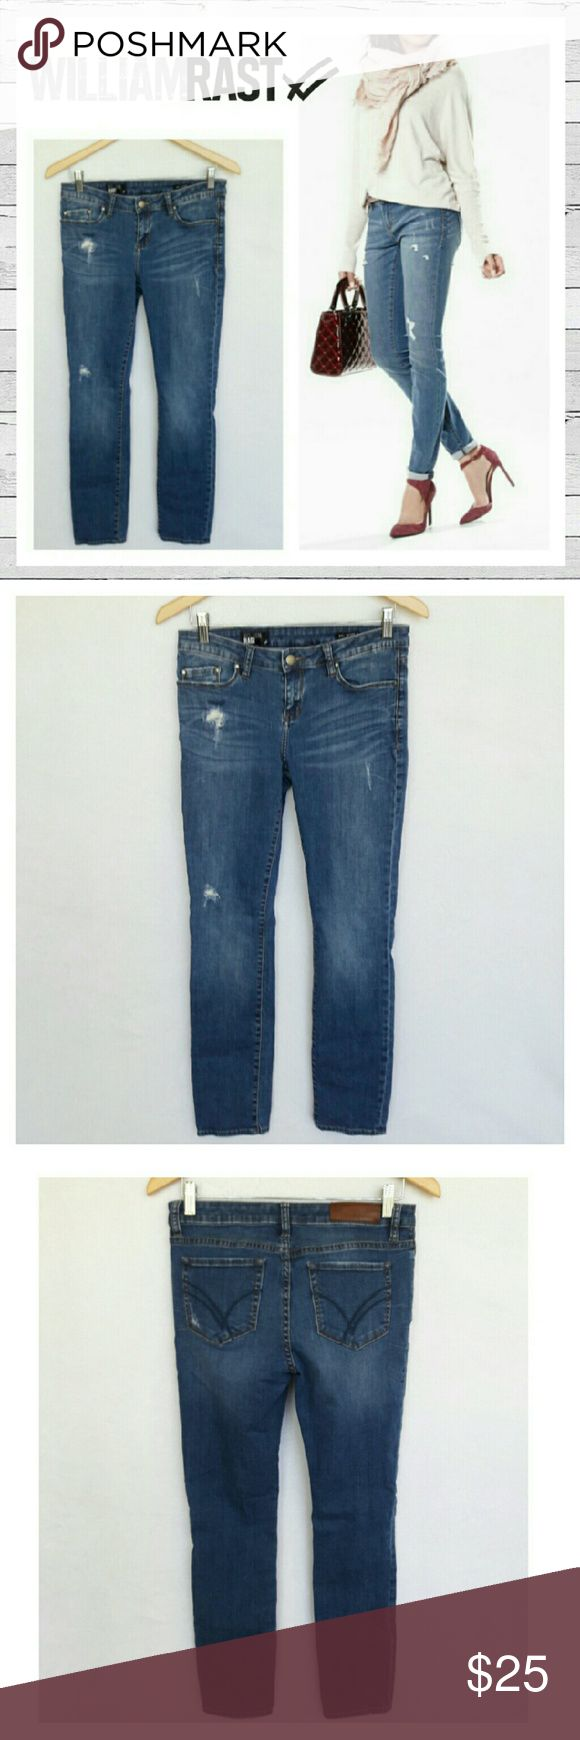 """William Rast Distressed Skinny Ankle Jeans Sz 28 William Rast Distressed Skinny Stretch Ankle Jeans Sz 28. Excellent like new condition. 28 1/2"""" inseam. 8"""" rise. Super cute! Sorry no trades. William Rast Jeans Skinny"""